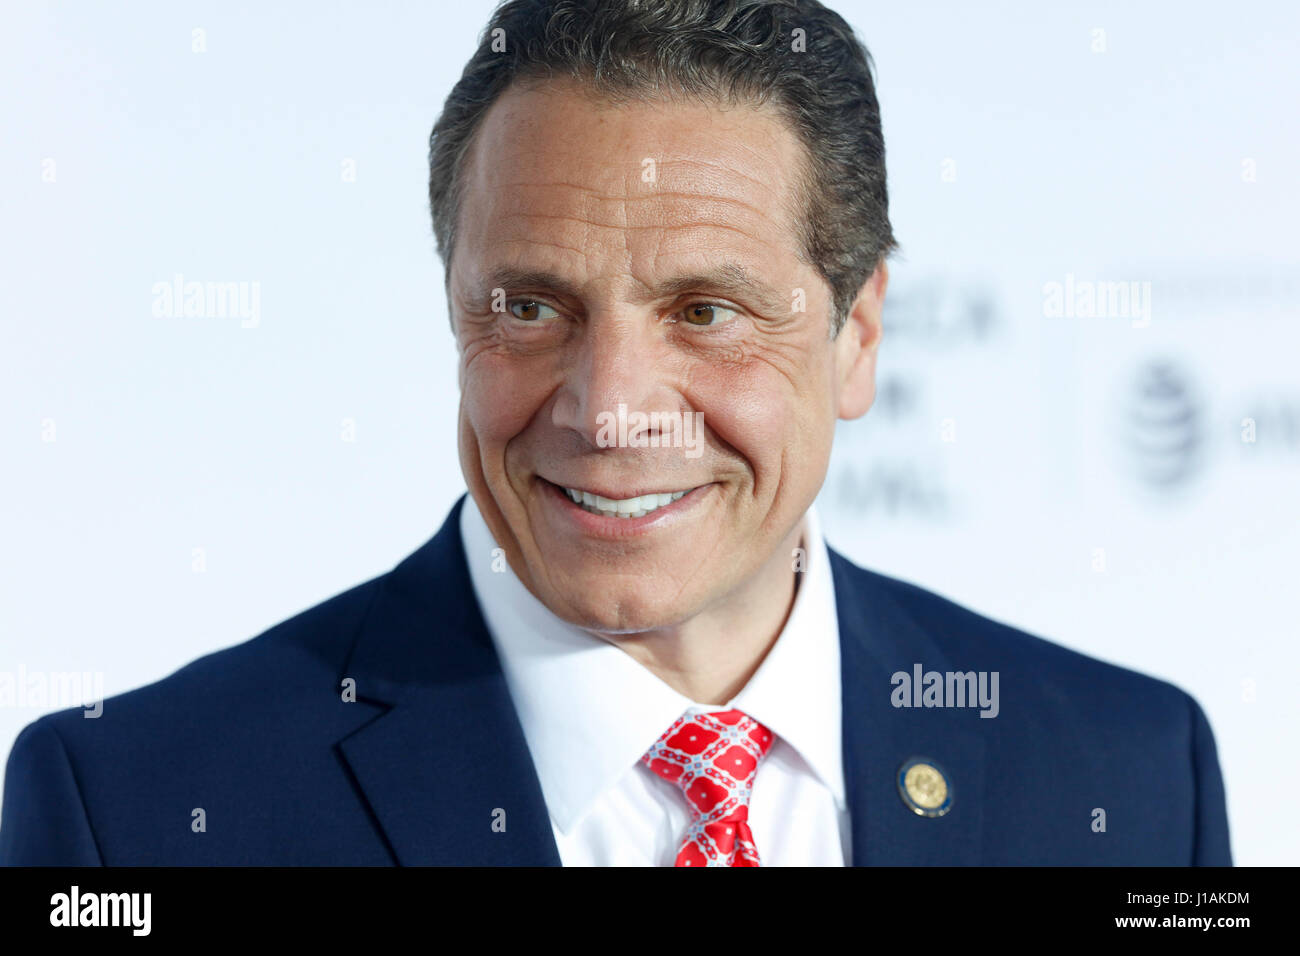 New York, USA. 19. April 2017. Gouverneur von New York, Andrew Cuomo kommt bei der 2017 Tribeca Film Festival Opening Stockbild